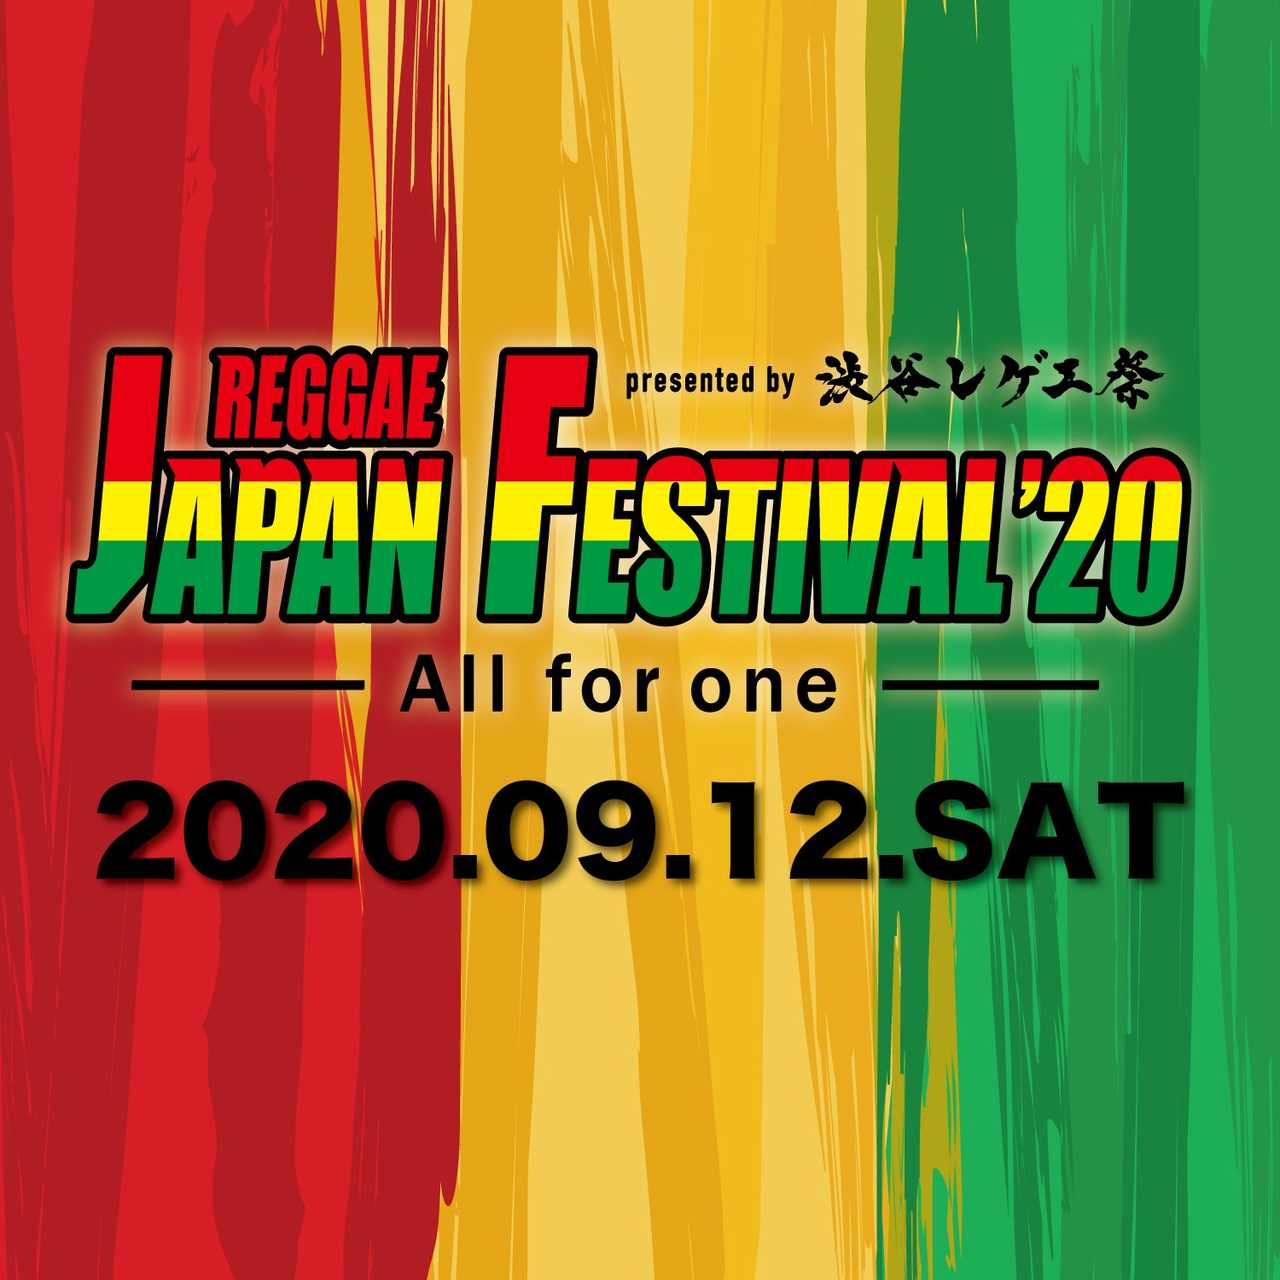 『REGGAE  JAPAN FESTIVAL'20 presented by 渋谷レゲエ祭』